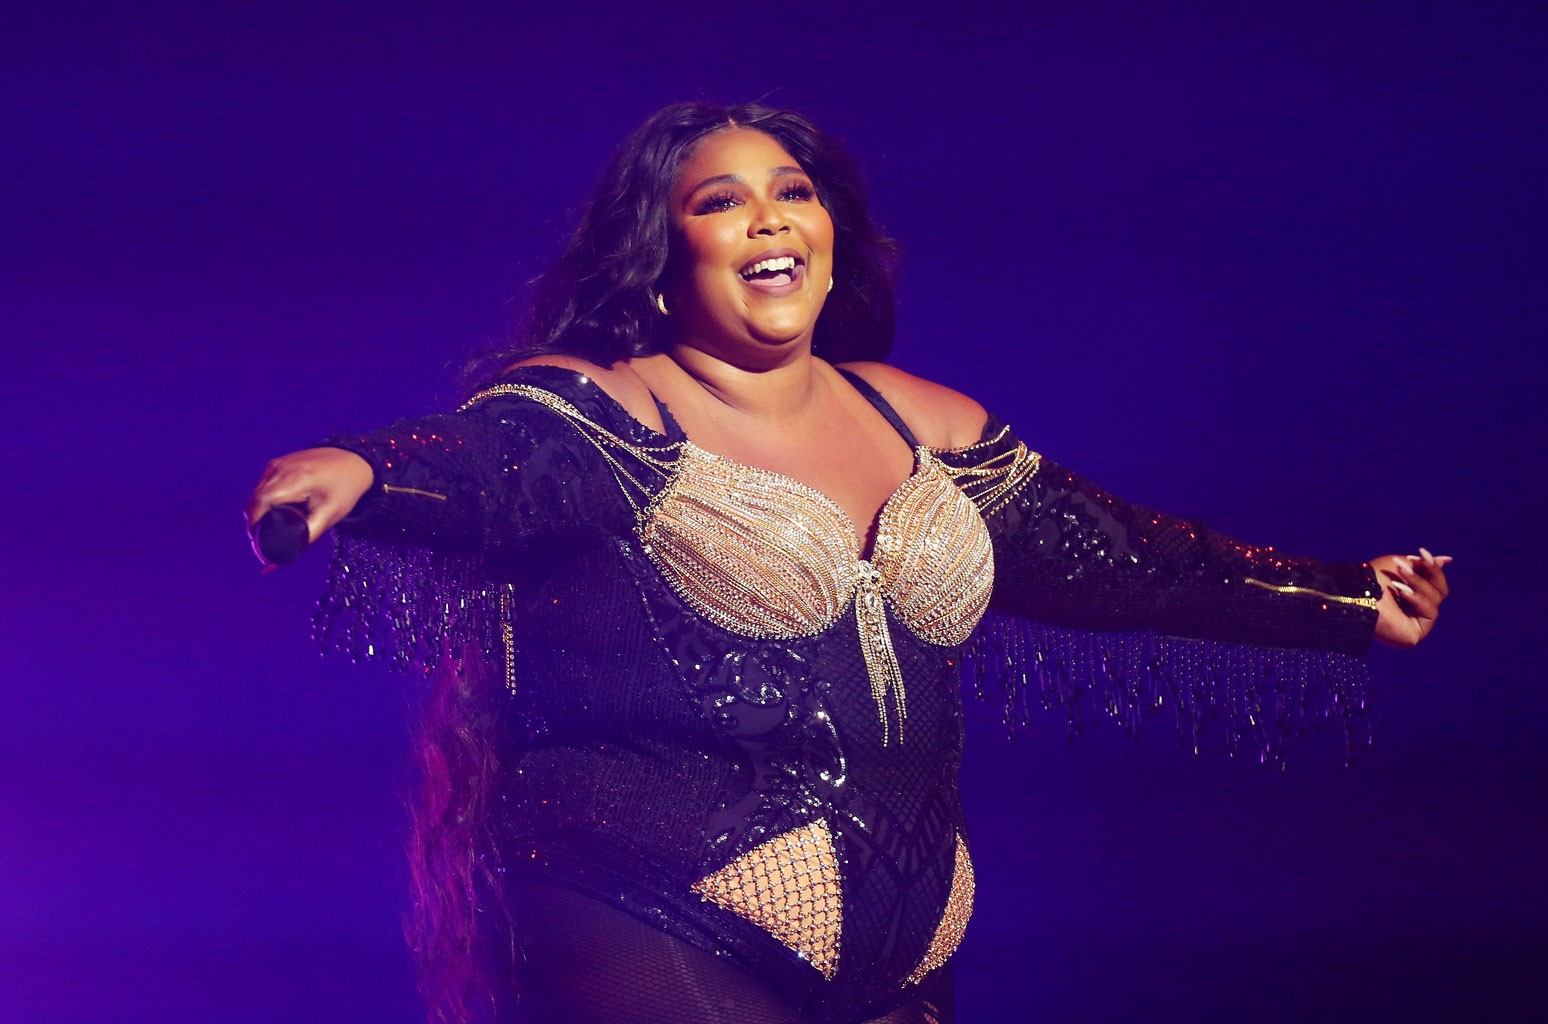 Lizzo Asks Fans to Stay Six Feet Away Due to Delta Variant